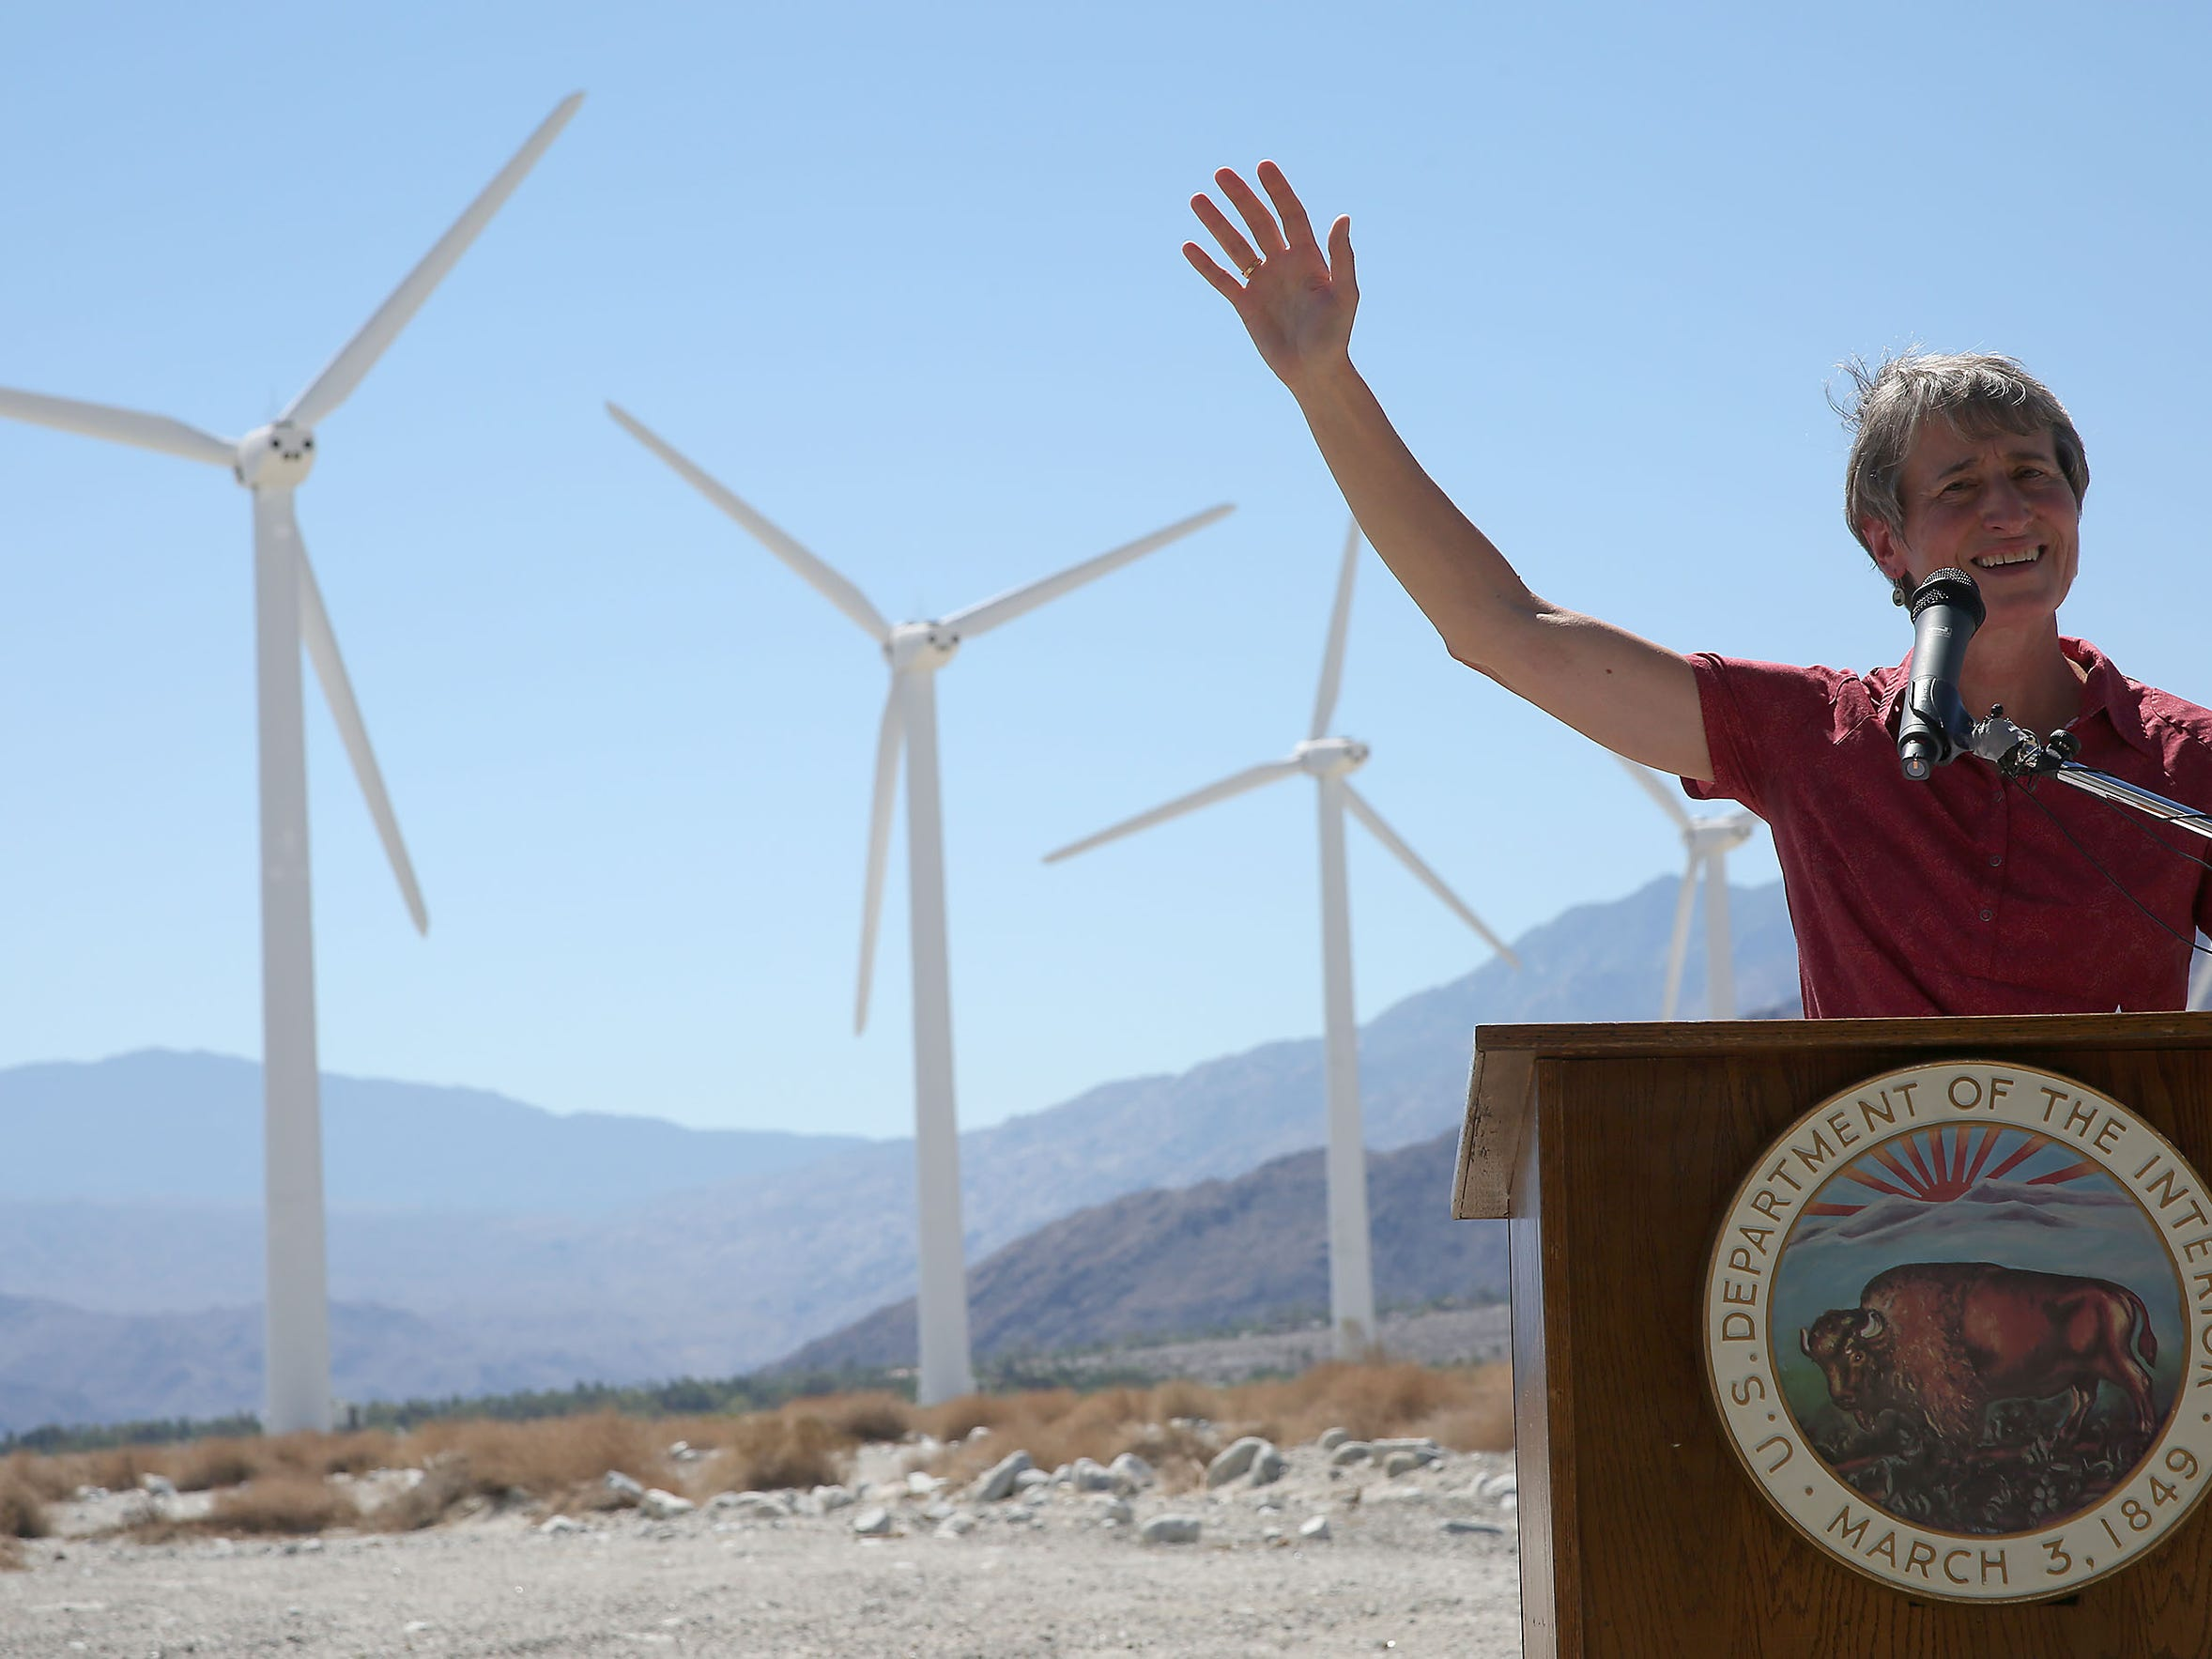 Then-Interior Secretary Sally Jewell announces a draft version of the Desert Renewable Energy Conservation Plan at a wind farm north of Palm Springs on Sept. 23, 2014.